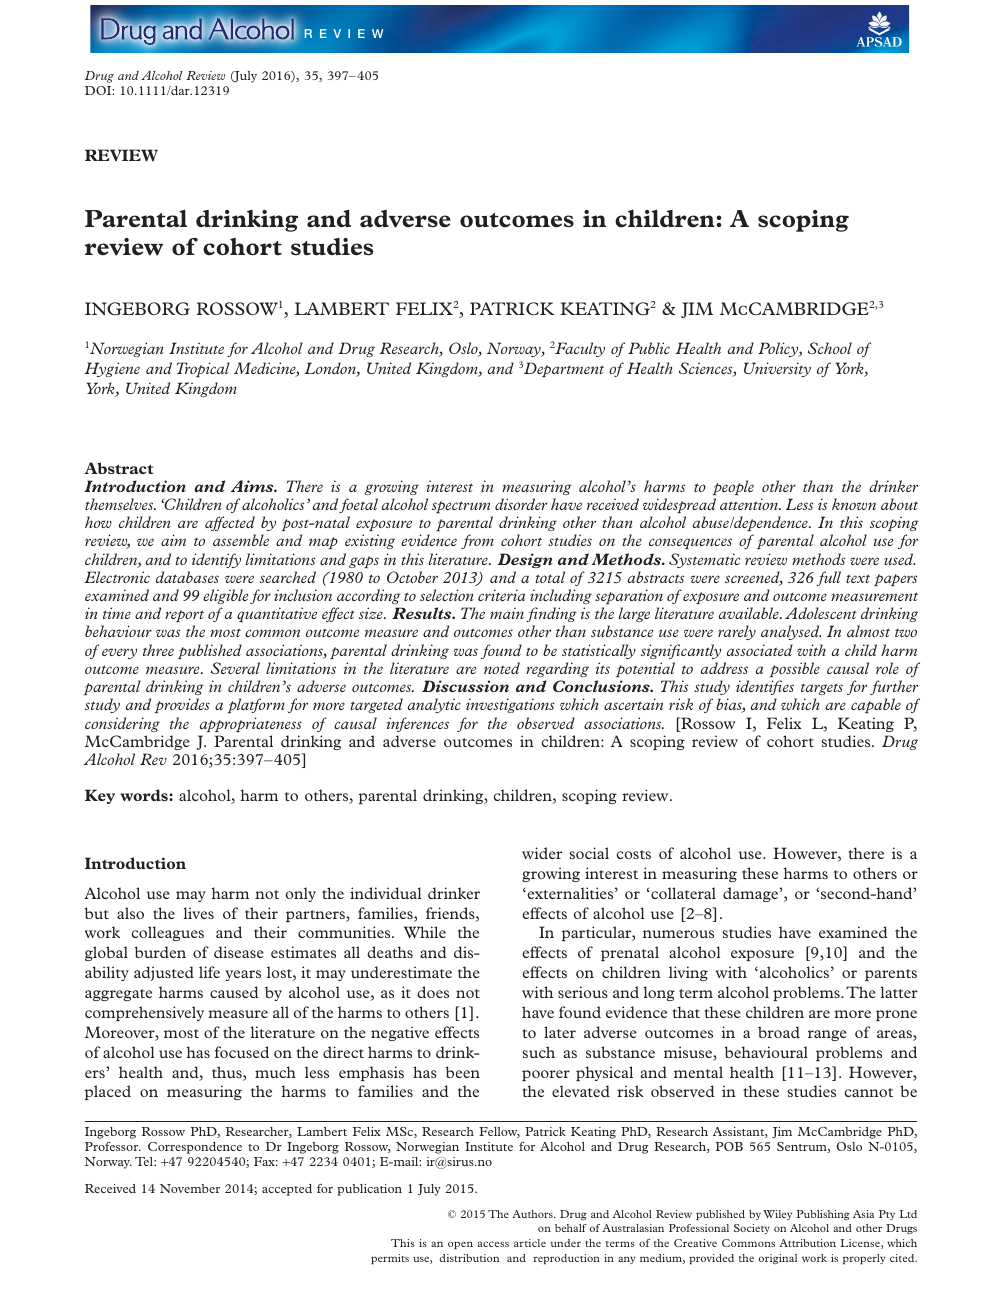 Parental drinking and adverse outcomes in children: A